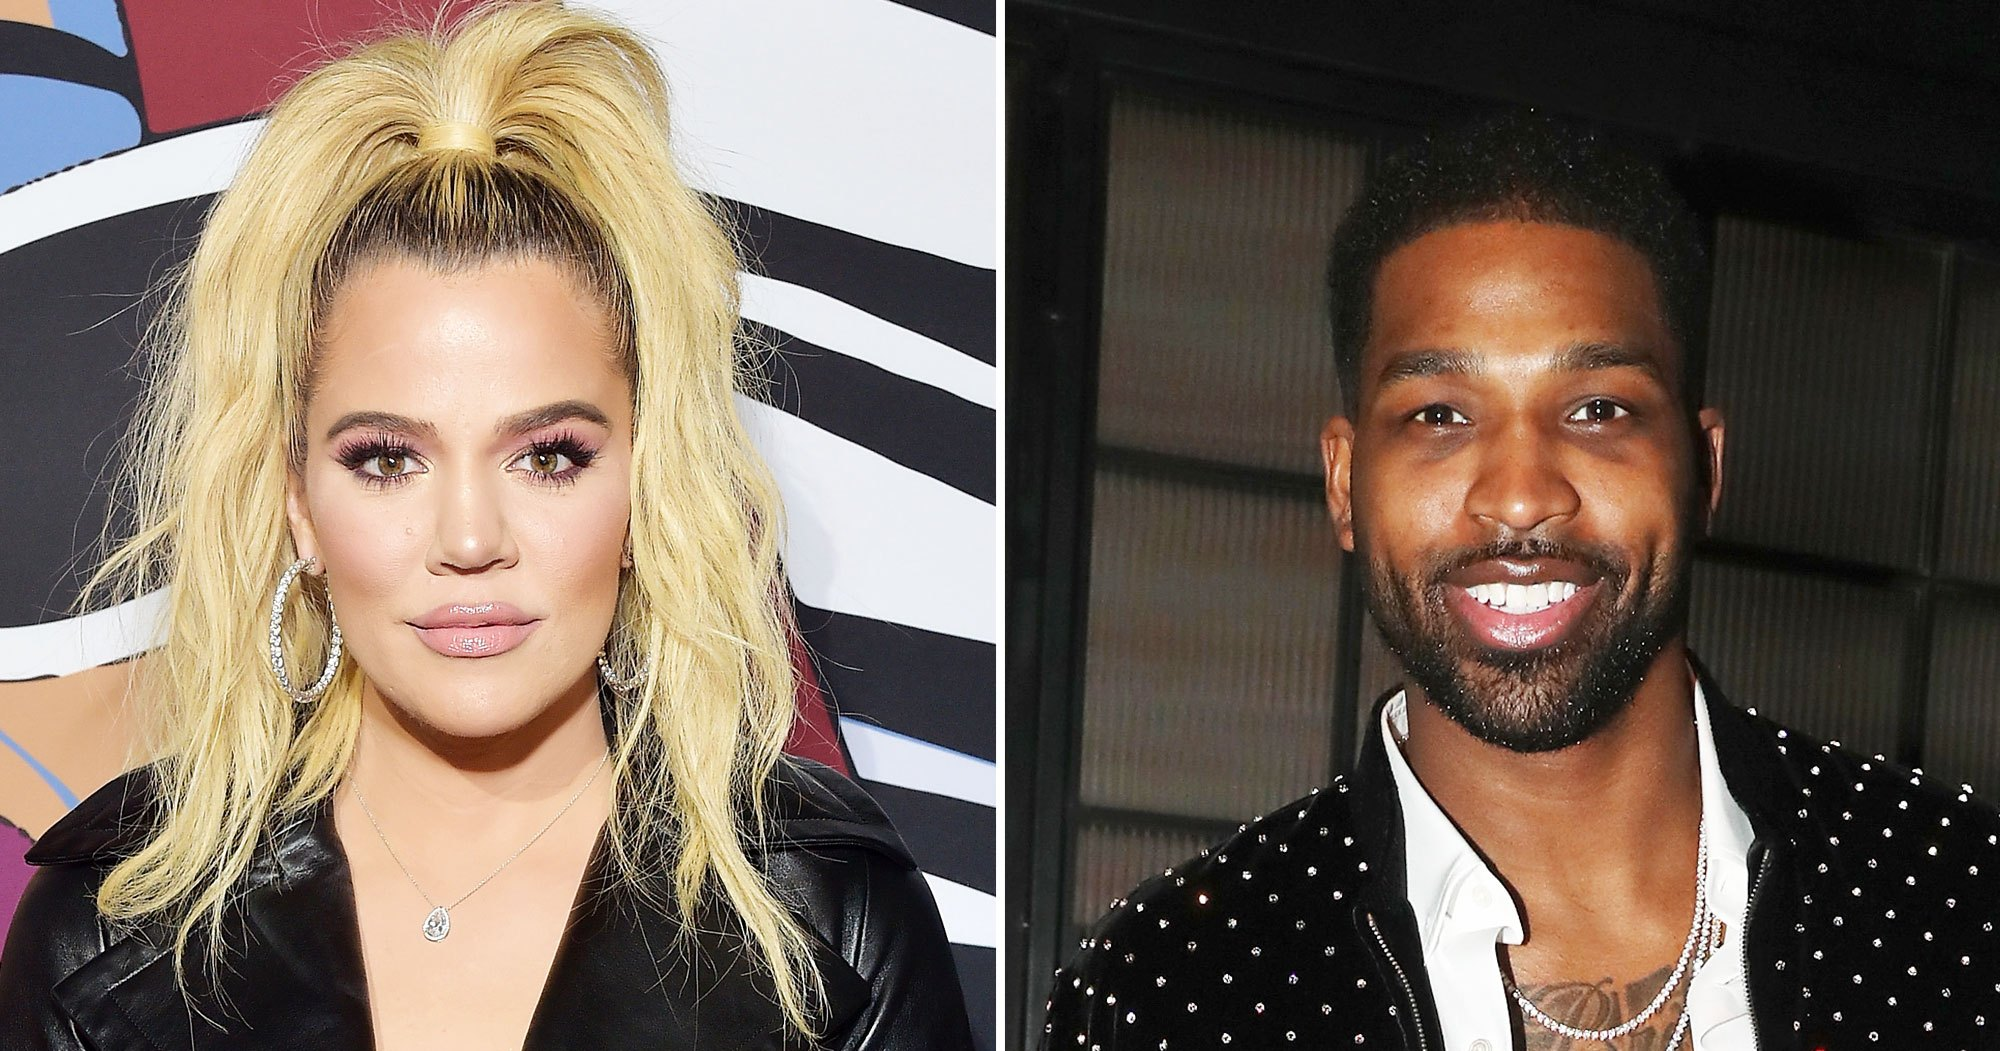 Tristan Thompson on 'Twin' Daughter True: 'My Princess'